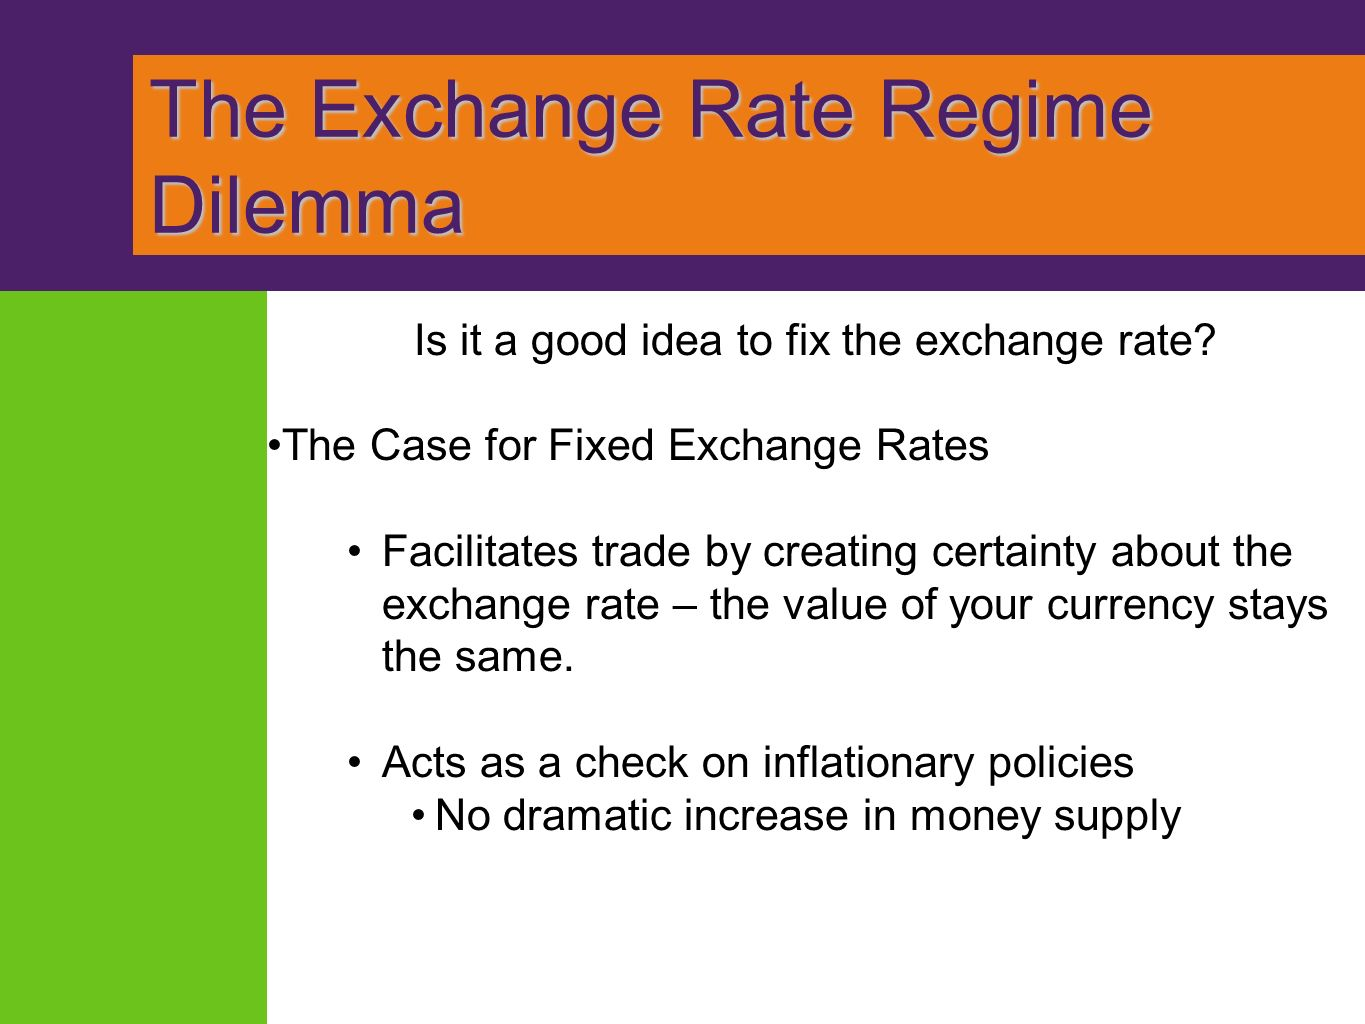 exchange rate policy Us foreign exchange intervention the us monetary authorities occasionally intervene in the foreign exchange (fx) market to counter disorderly market conditions the treasury, in consultation with the federal reserve system, has responsibility for setting us exchange rate policy, while the federal reserve bank new york is responsible for executing fx intervention.